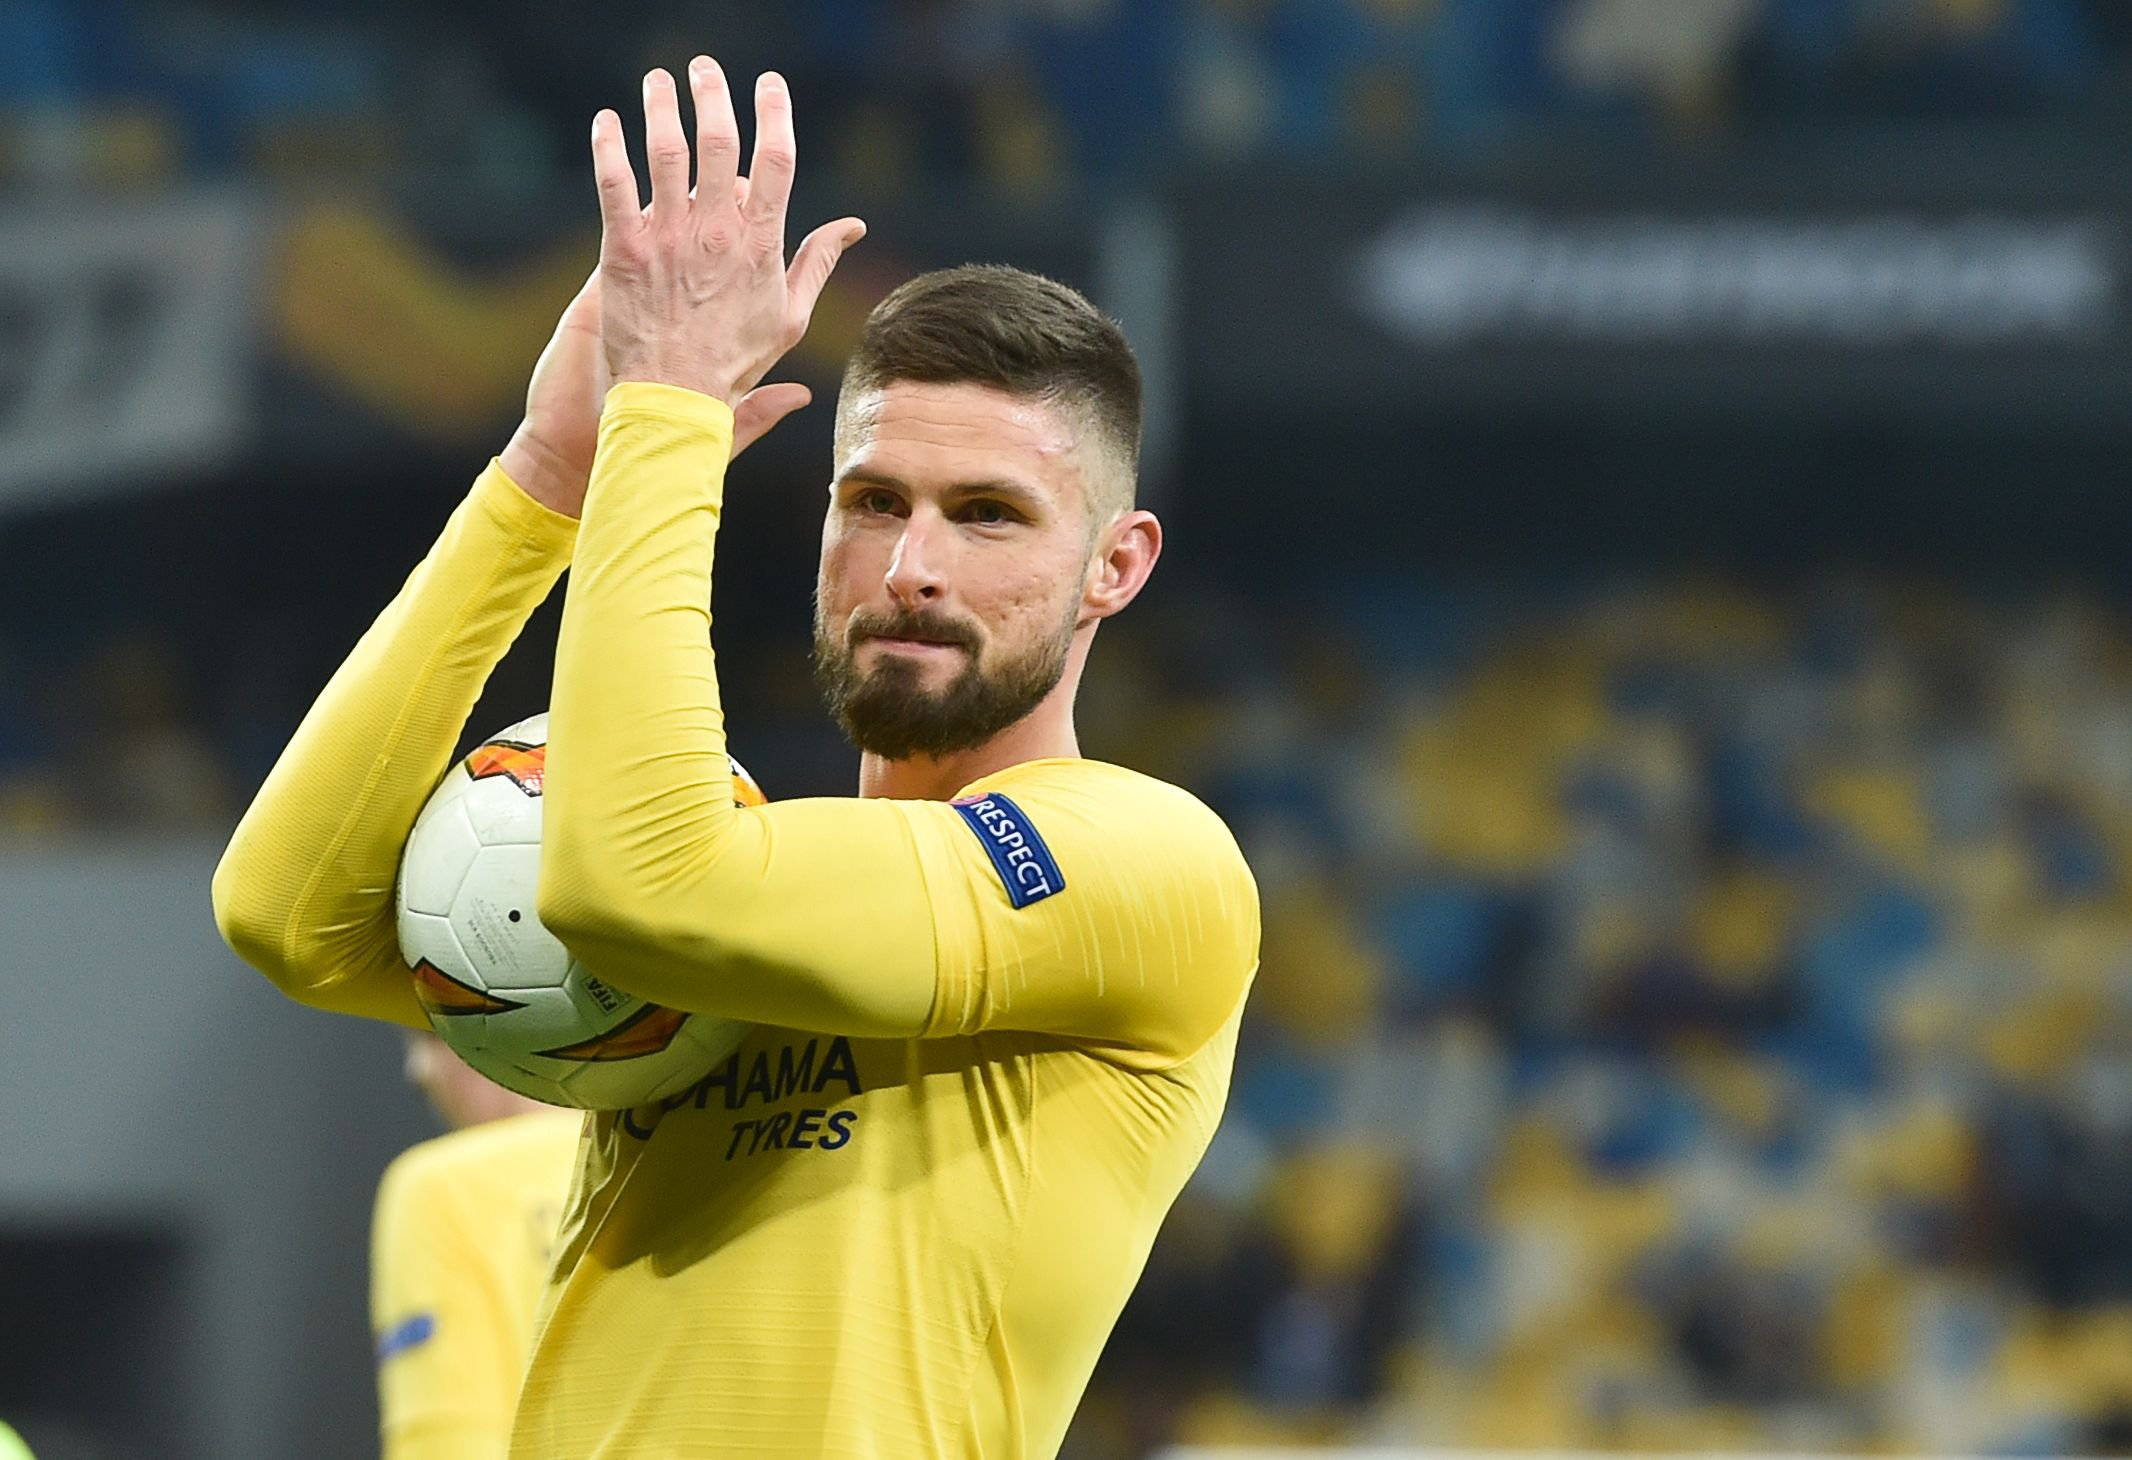 Chelsea's French forward Olivier Giroud celebrates after the UEFA Europa League round of 16, second leg football match between FC Dynamo Kyiv and Chelsea FC at NSK Olimpiyskyi stadium in Kiev on March 14, 2019. (Photo by Sergei SUPINSKY / AFP)SERGEI SUPINSKY/AFP/Getty Images